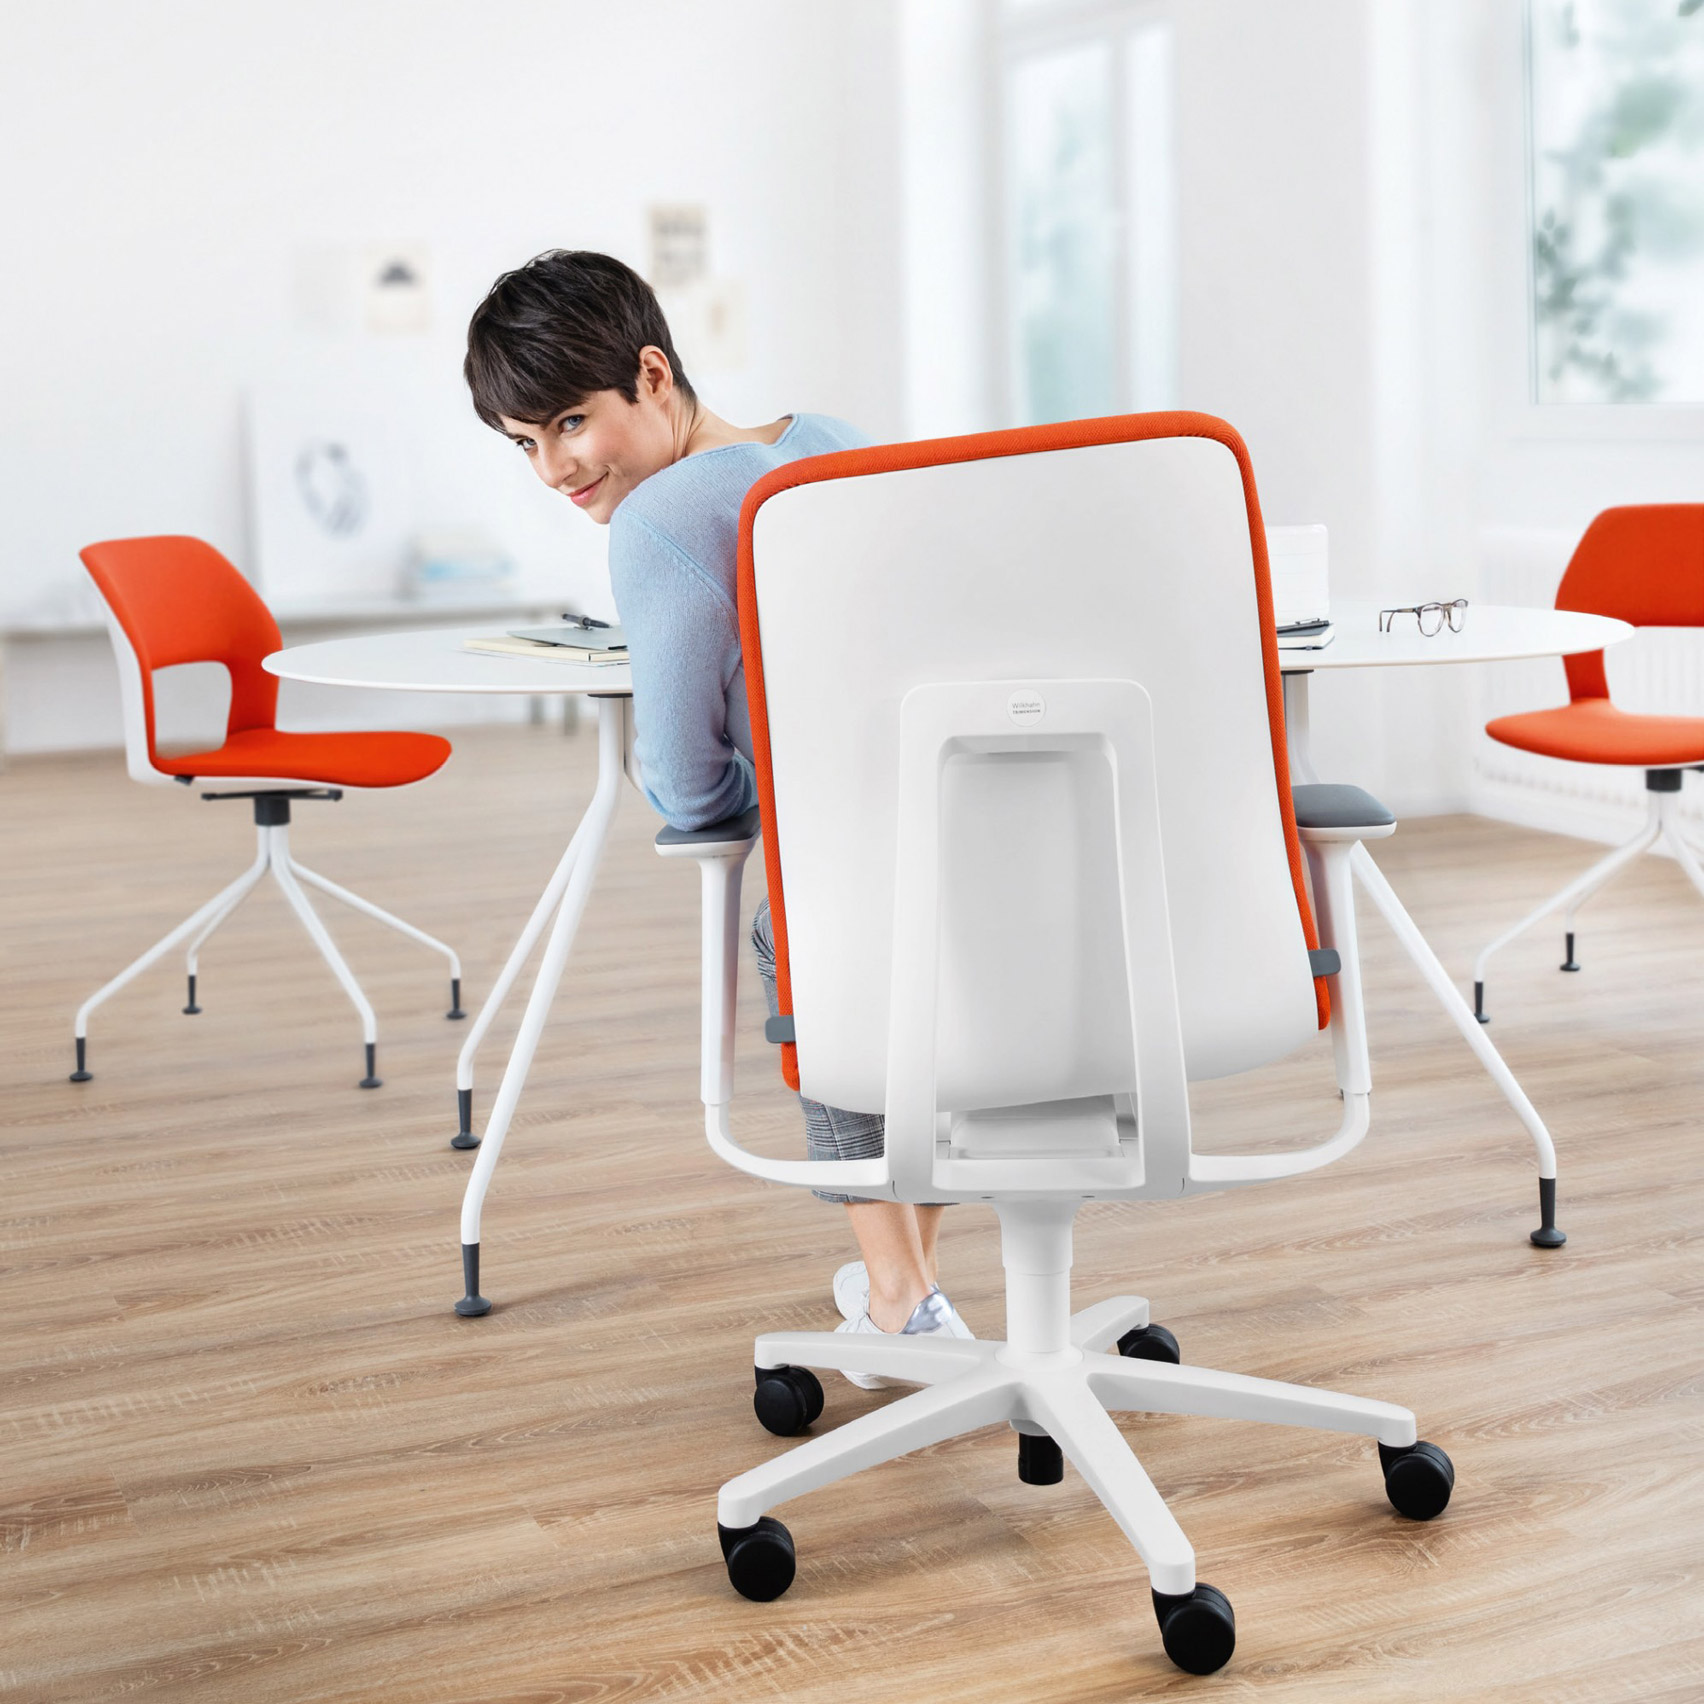 Wilkahn At 187 Chair Promotes Dynamic Sitting To Prevent Backaches